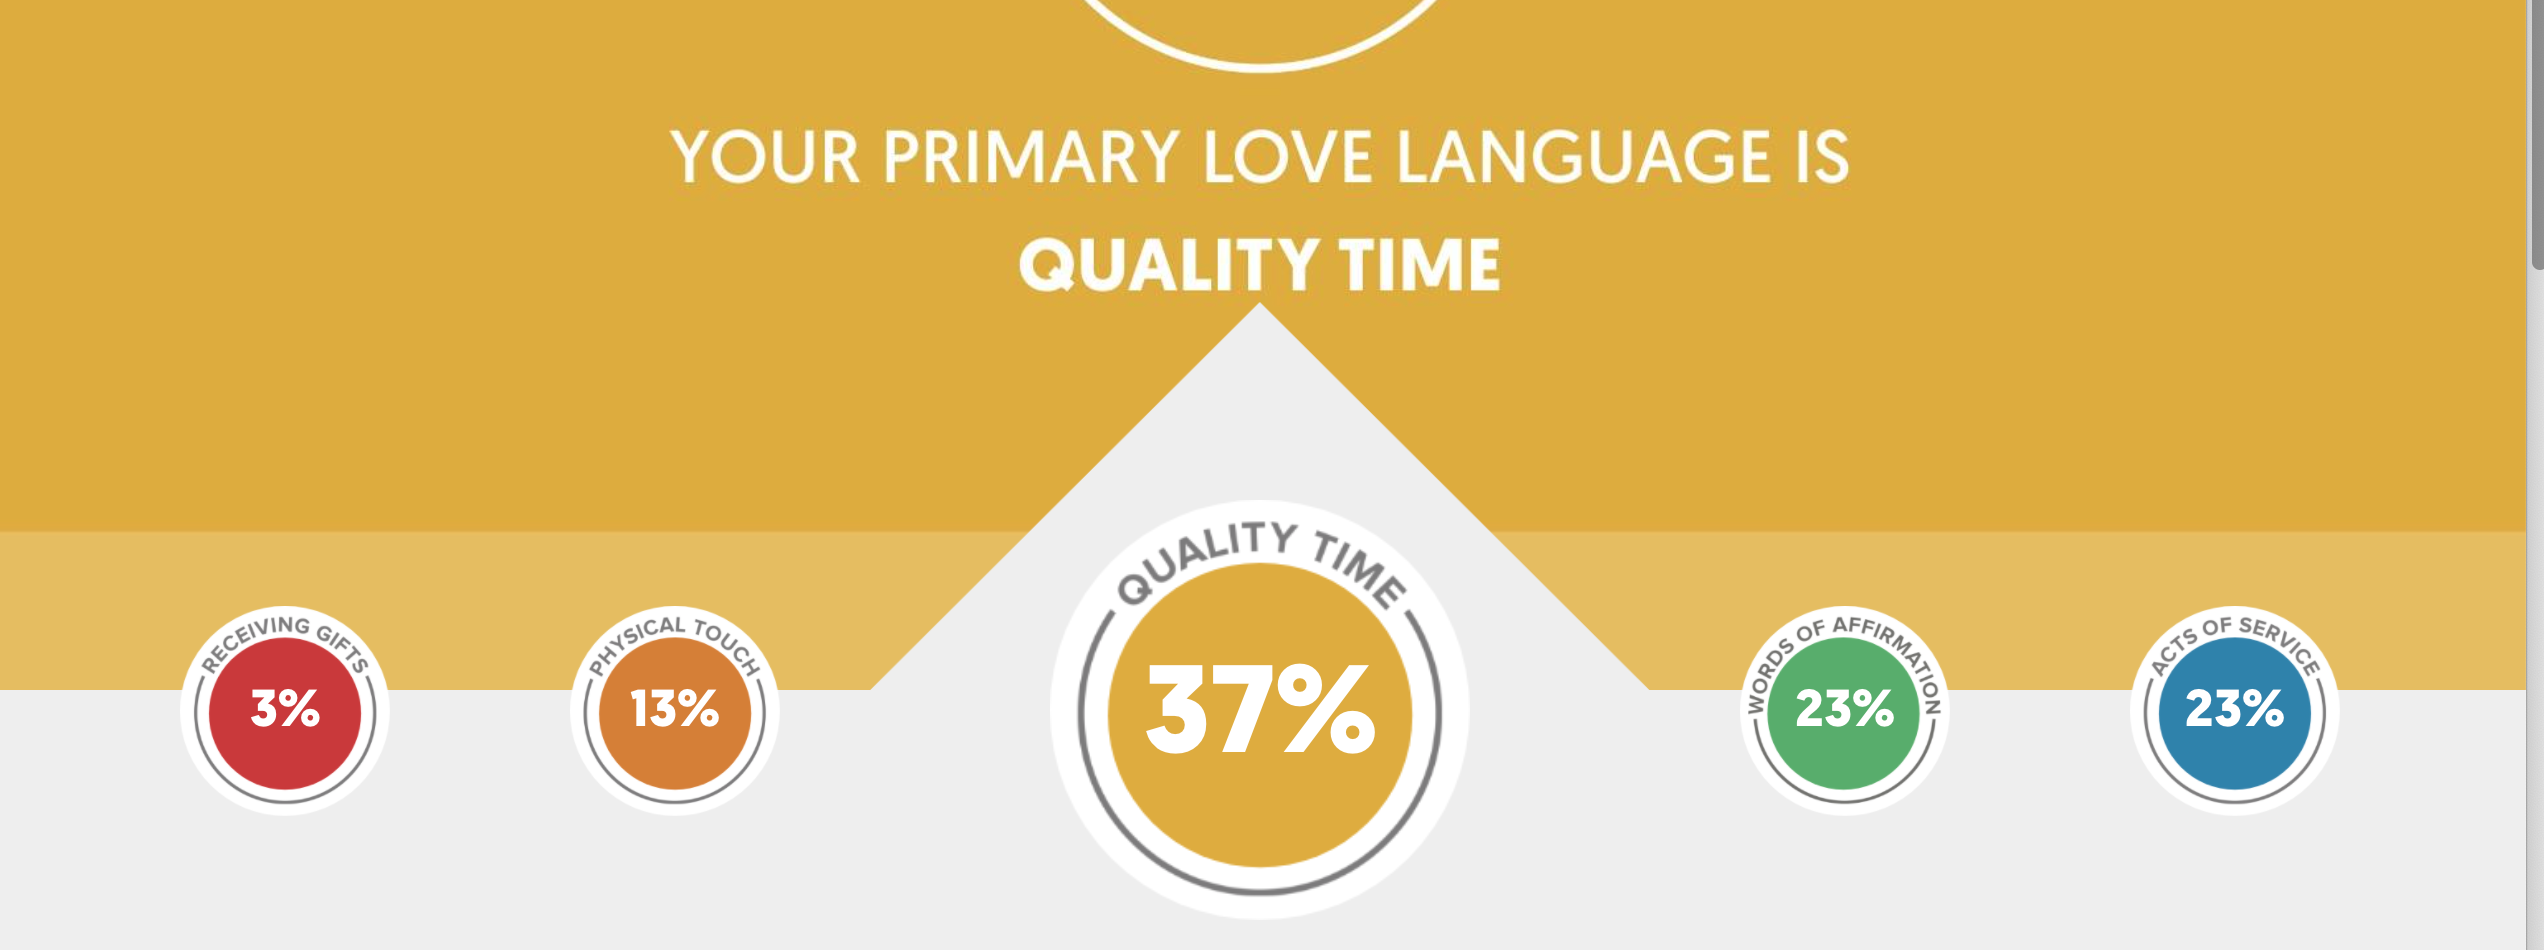 A graphic showing the results from a quiz of the five love languages. The results are listed as percentages, with quality time having the highest